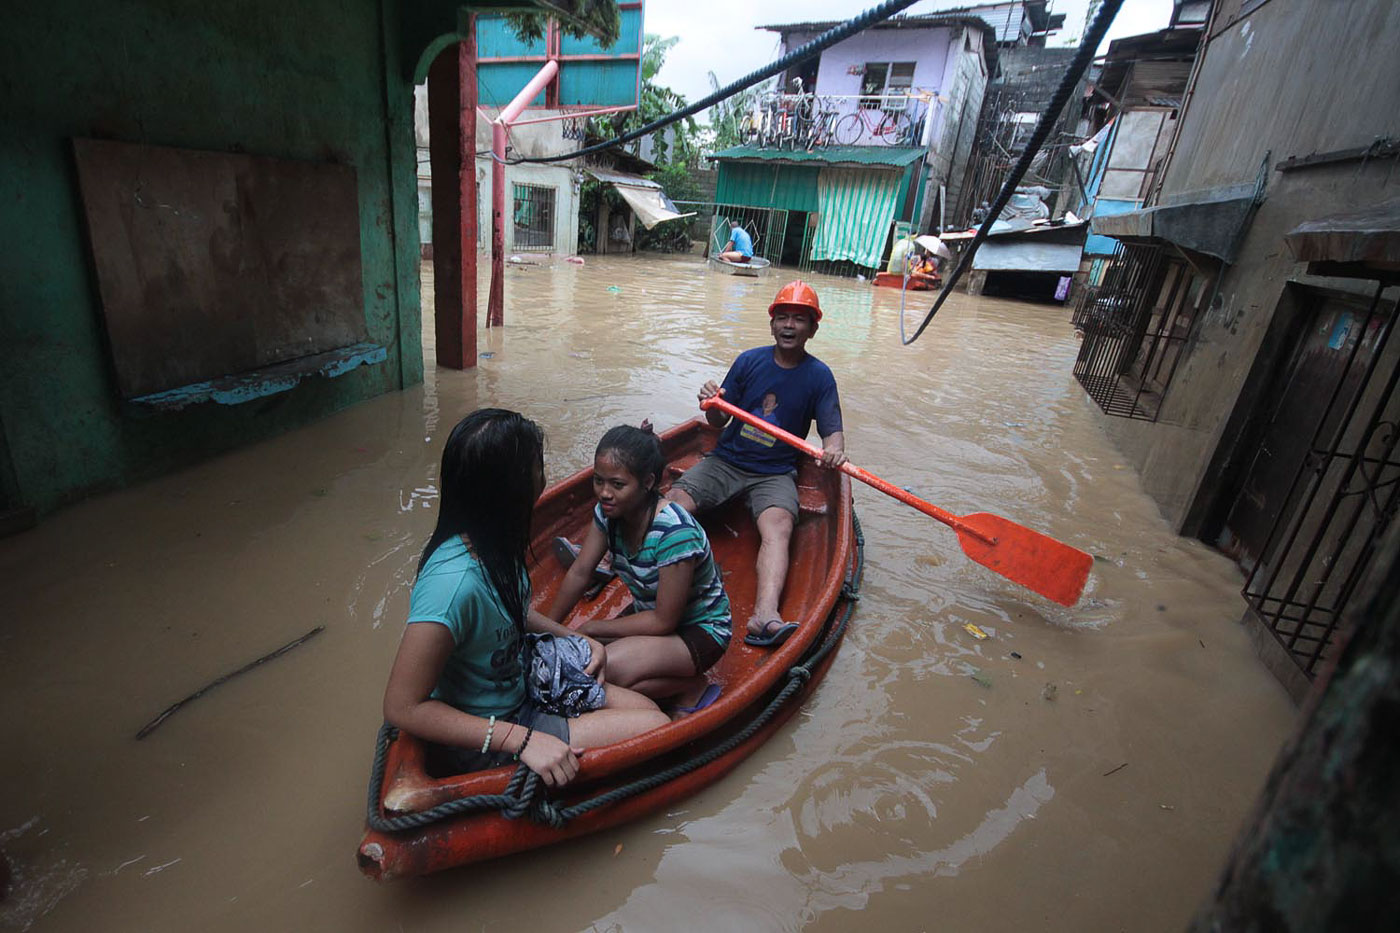 TYPHOON OMPONG. Residents of Barangay Banaba in San Mateo, Rizal, suffer flooding due to Typhoon Ompong (Mangkhut) on September 15, 2018. Photo by Darren Langit/Rappler